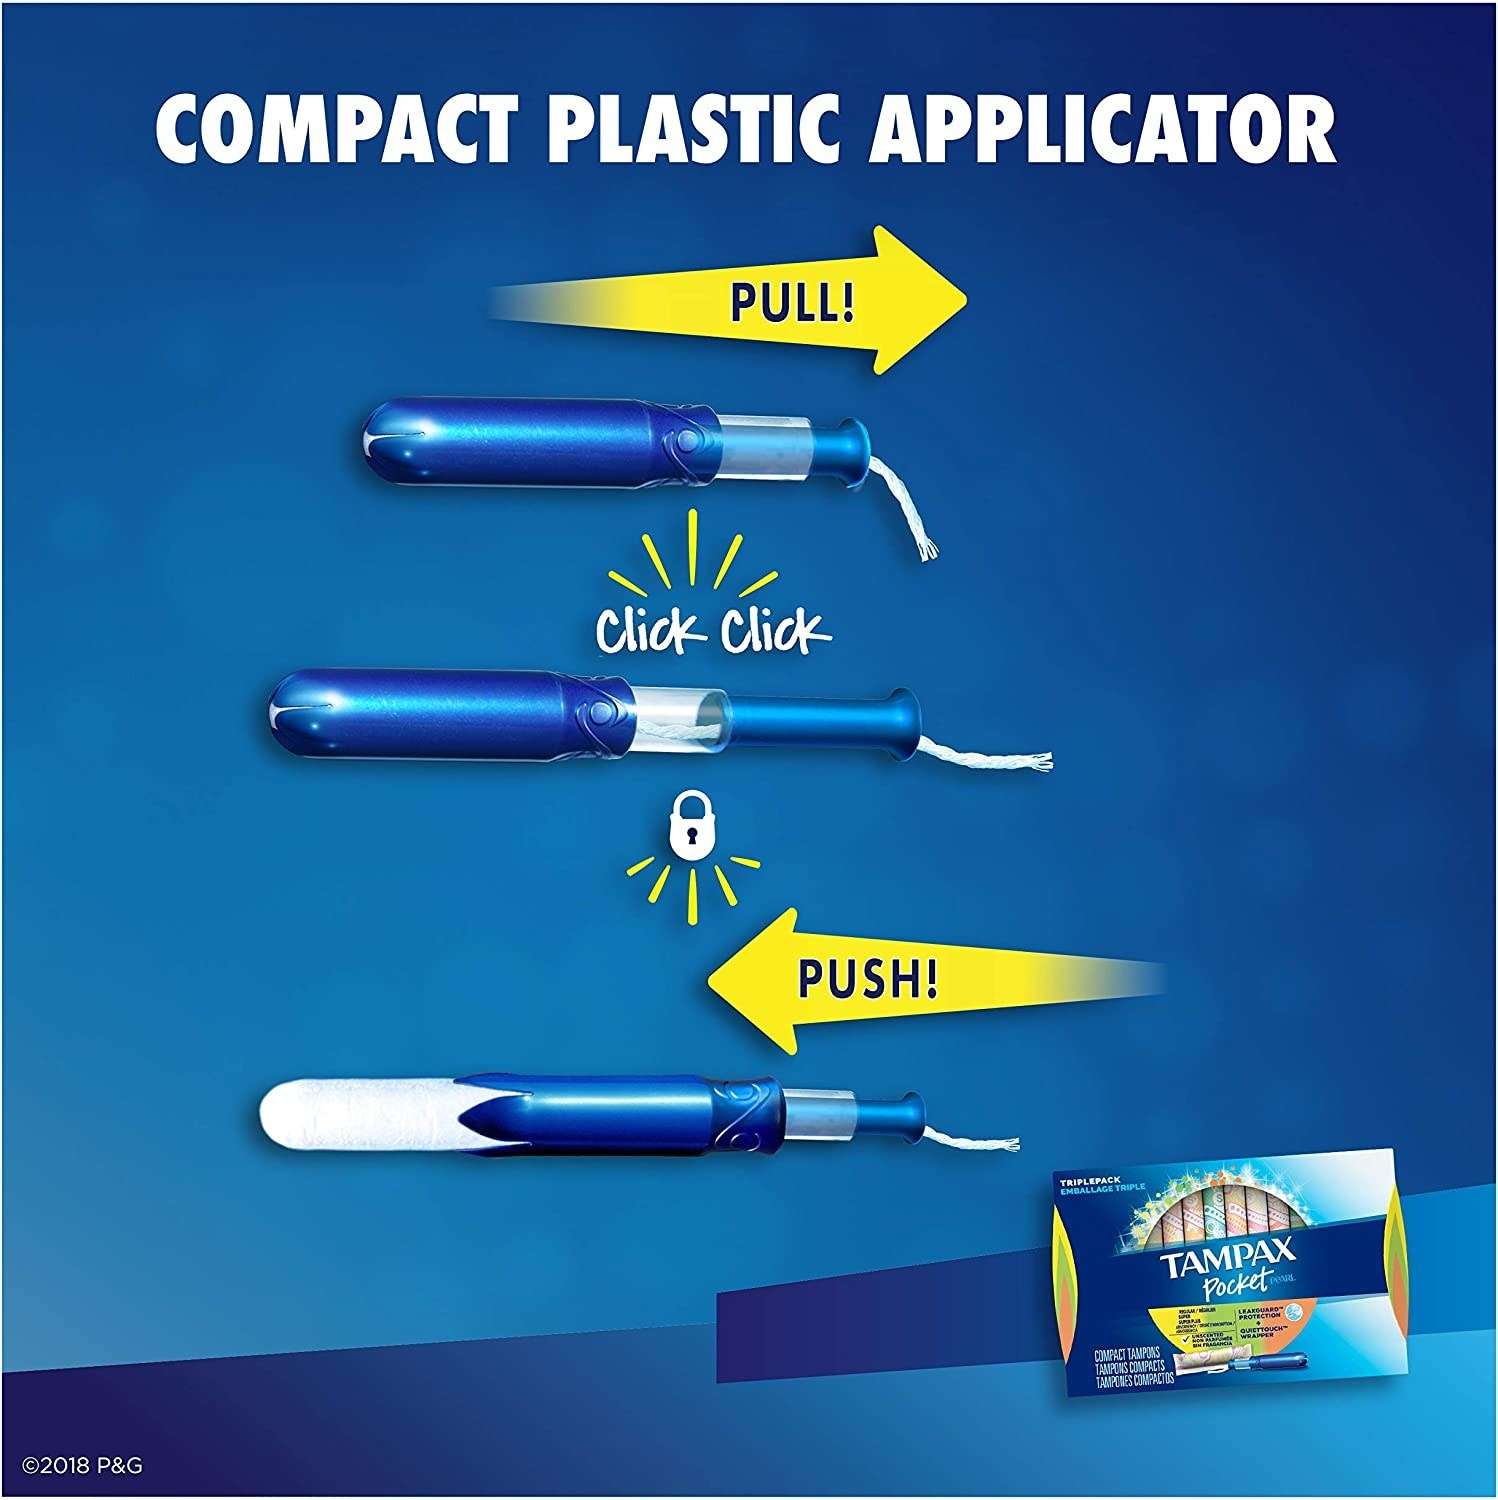 A diagram showing how to use the compact applicator: extend the applicator until you hear a click, then insert as usual